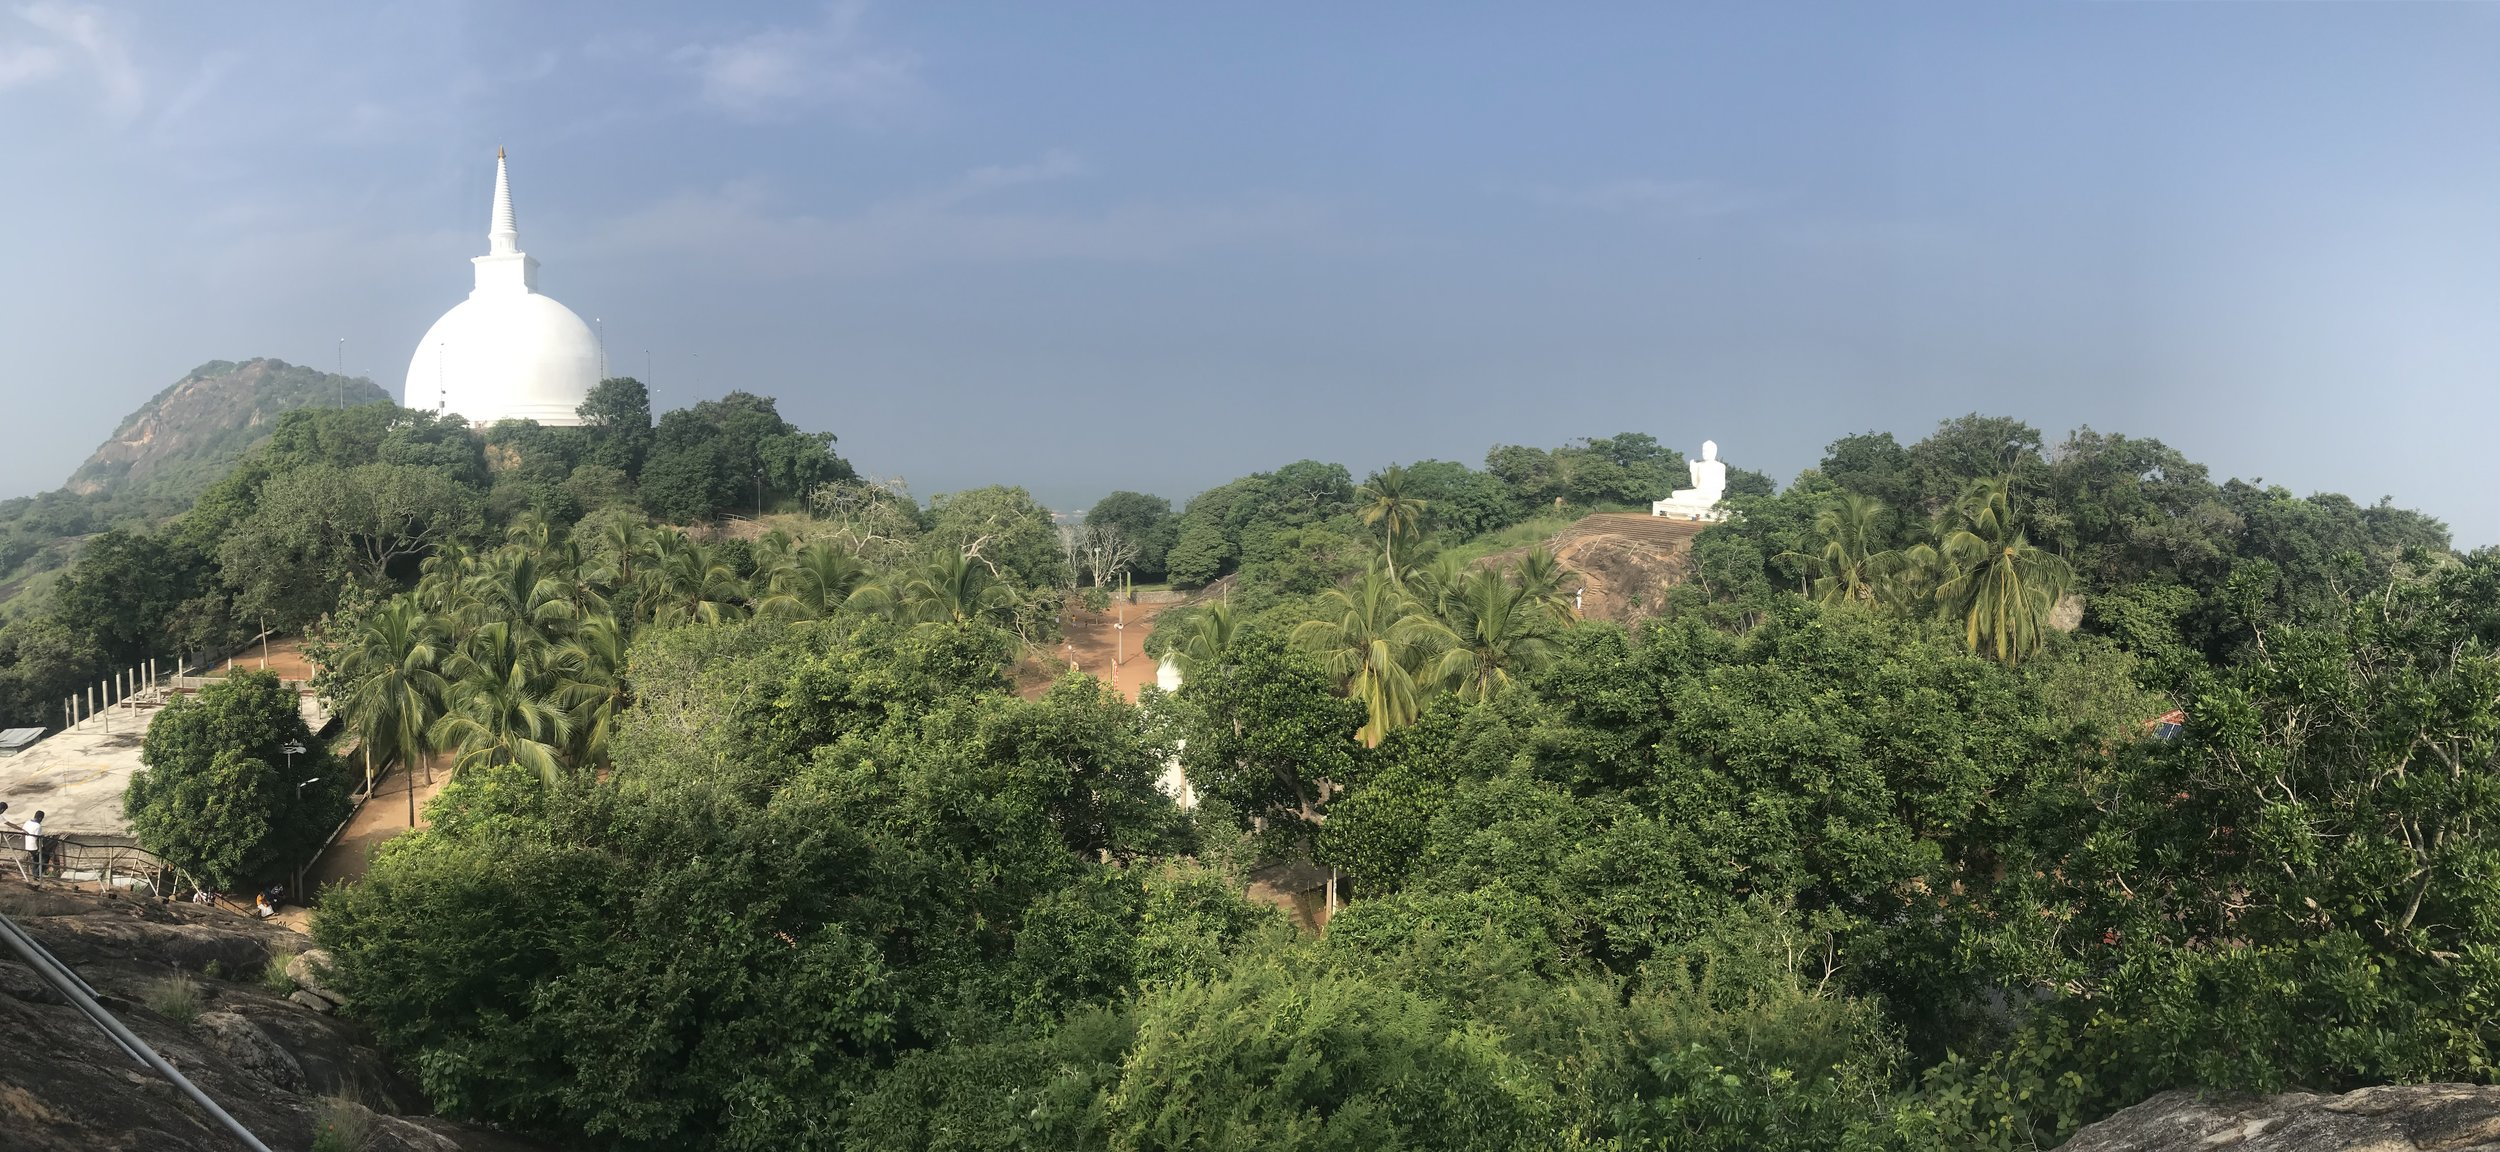 The view from the top of Aradhana Gala. The Maha Stupa is to the left, and the Buddha statue is to the right. The Ambasthala Dagaba is the bit of white down there in the middle, covered by trees.